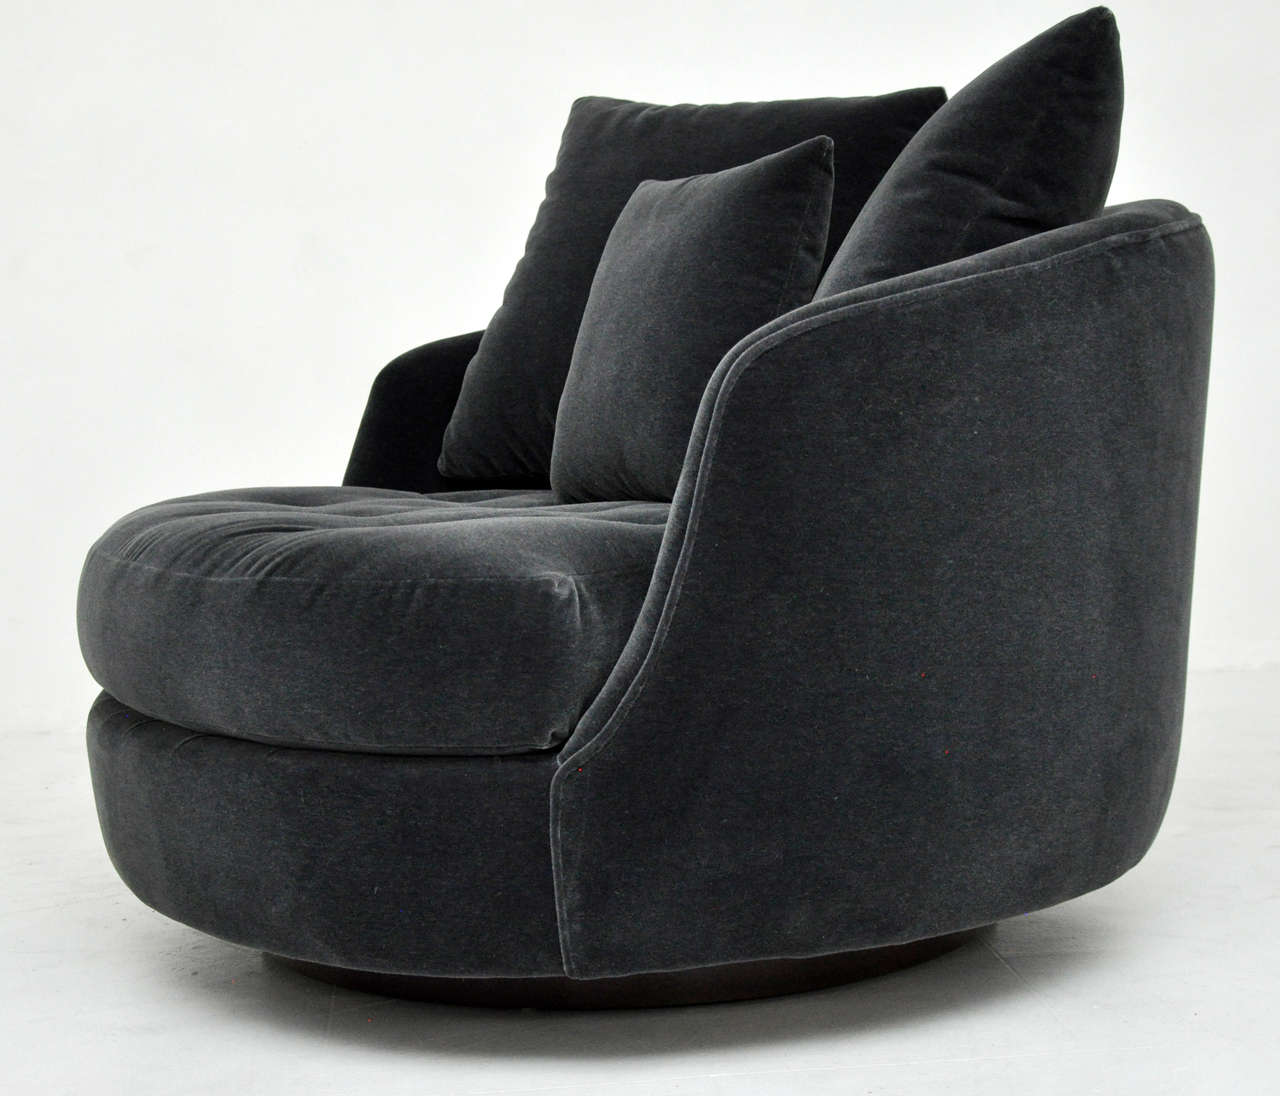 Large Swivel Chairs Living Room Large Swivel Chair Large Swivel Chair Chairs Living Room Buying